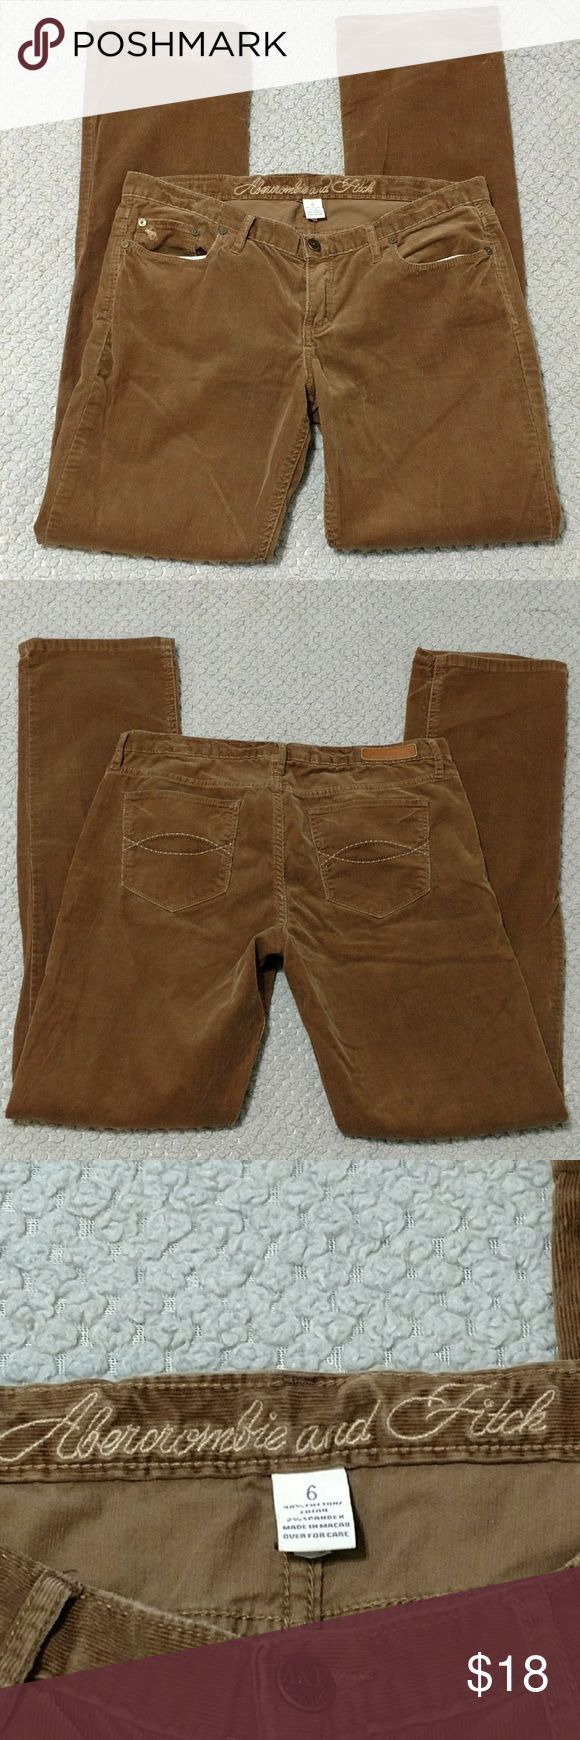 Abercrombie Fitch pants Brown Abercrombie Fitch pants Abercrombie & Fitch Pants